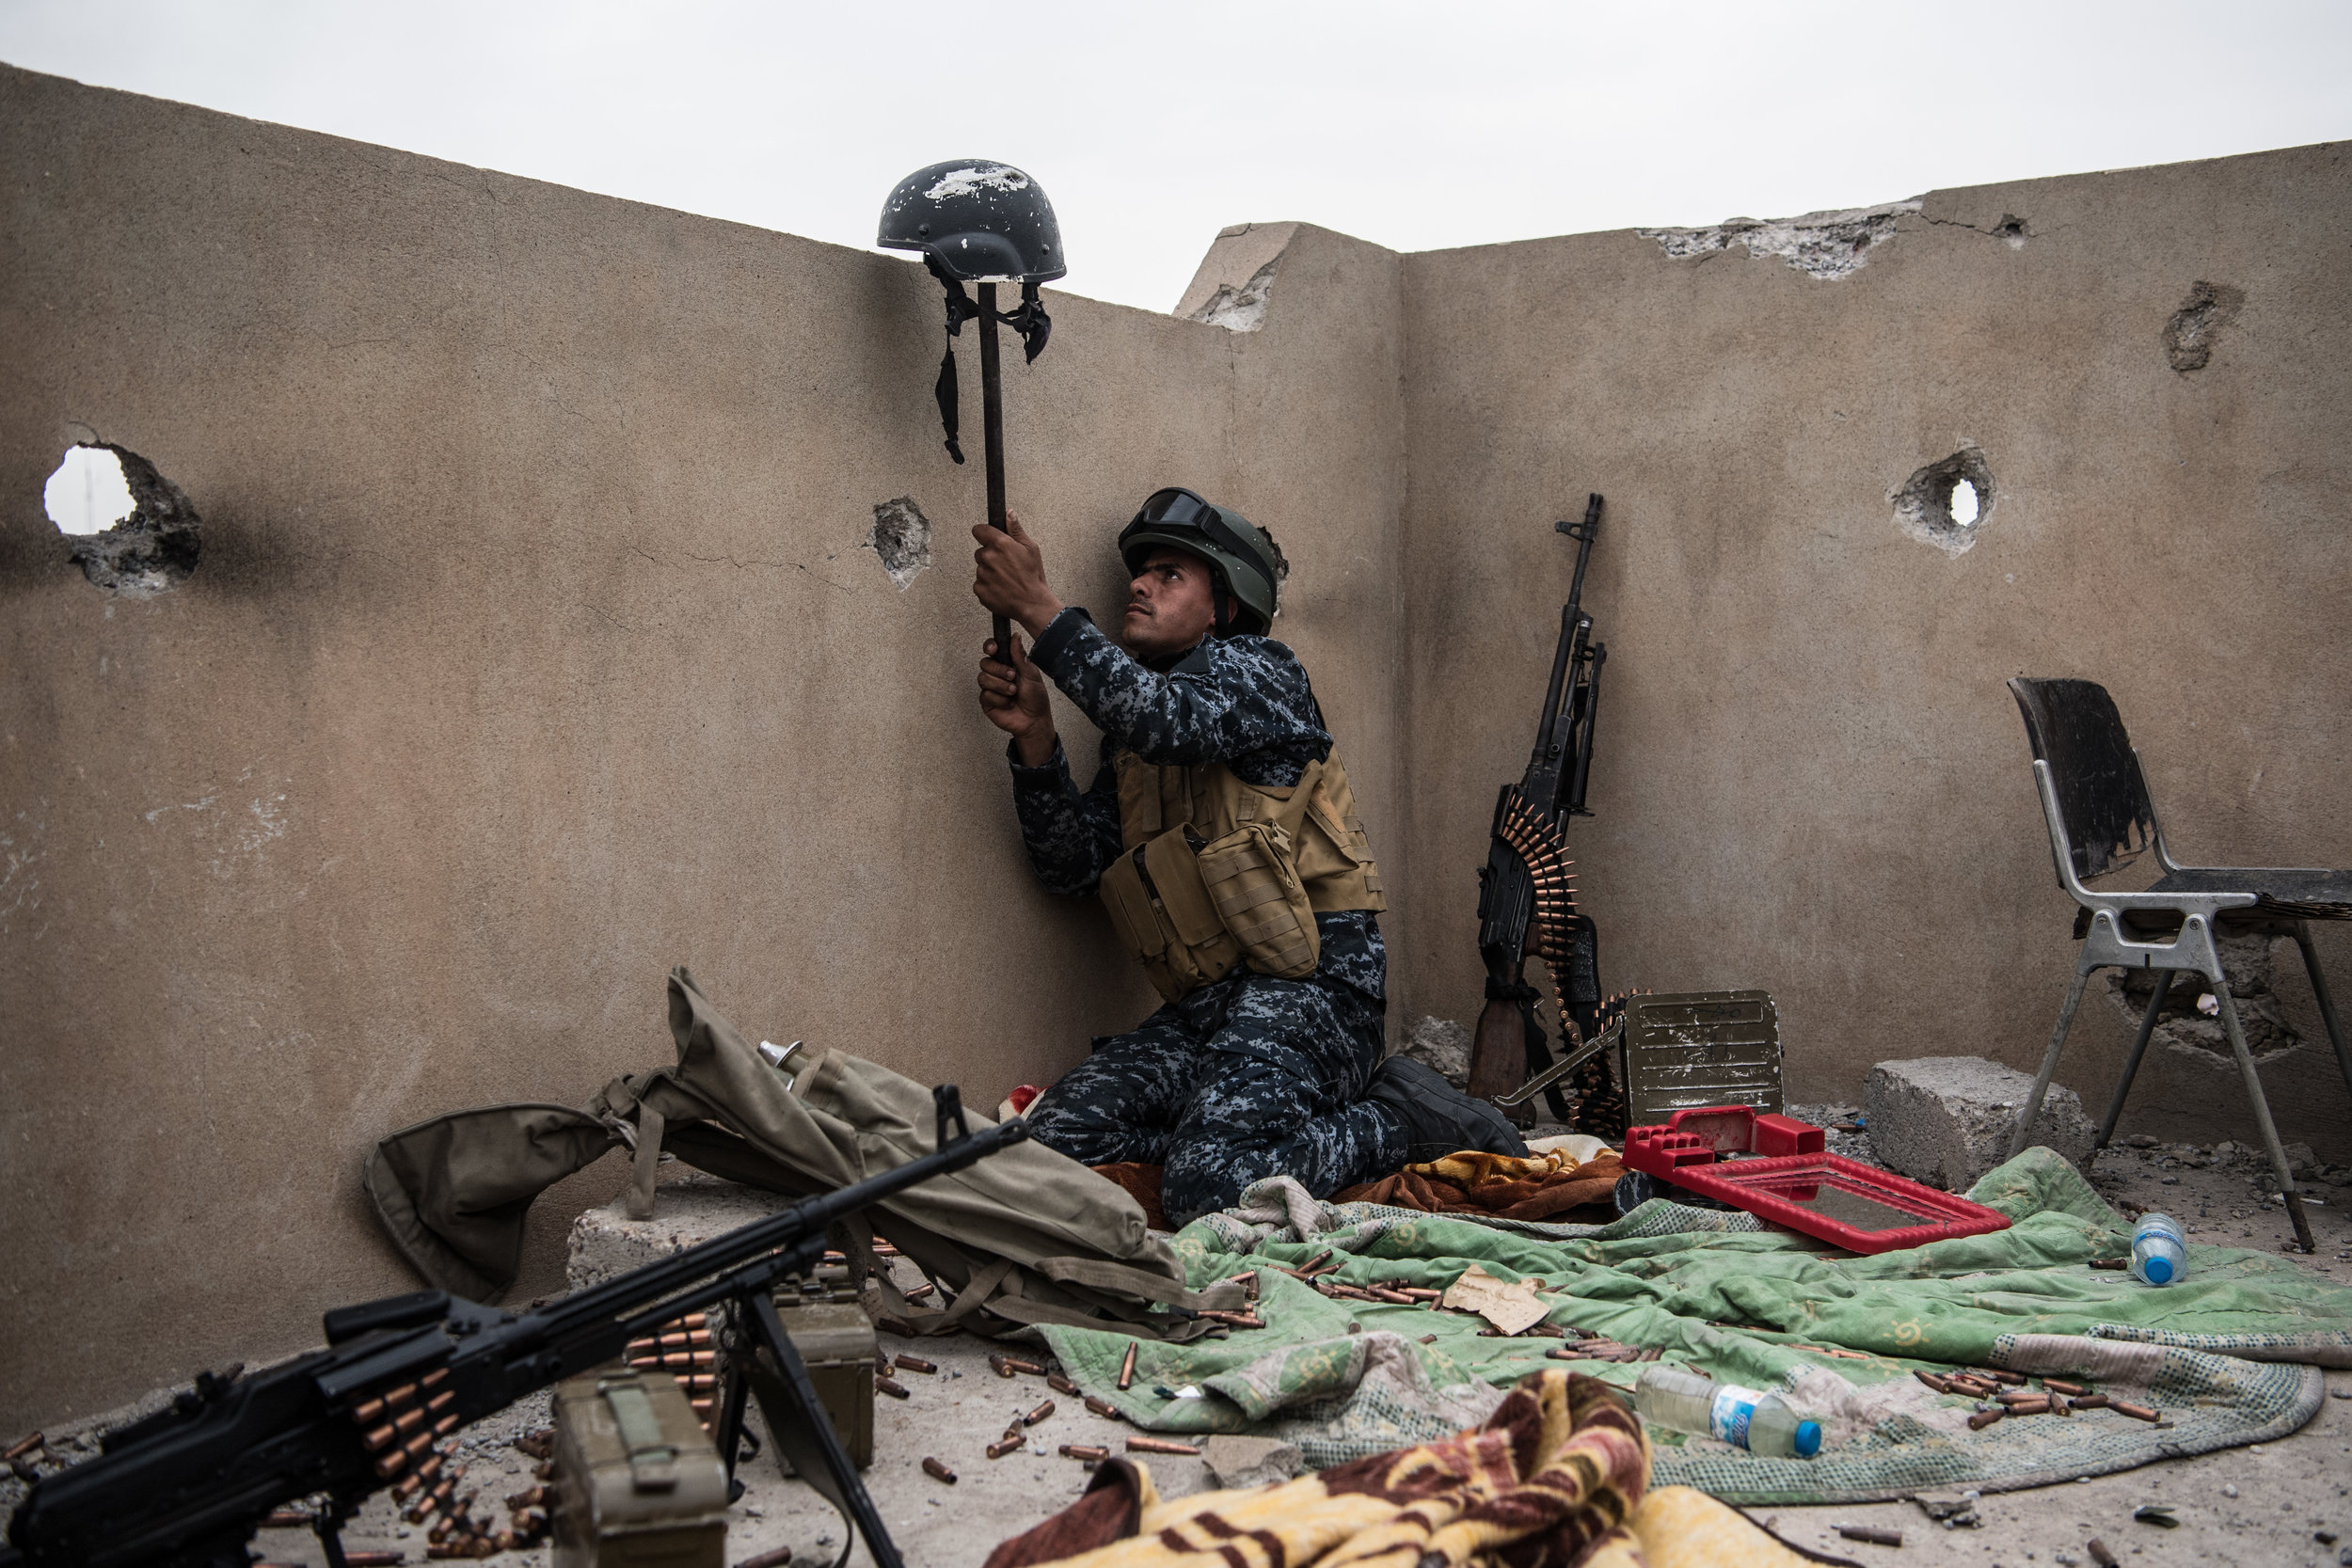 An Iraqi federal policeman uses a helmet on a stick to try and draw fire from an Islamic State sniper in an attempt to make him reveal his position during the battle to recapture west Mosul, Iraq�s second largest city.Photo by Carl Court  13 April 2017